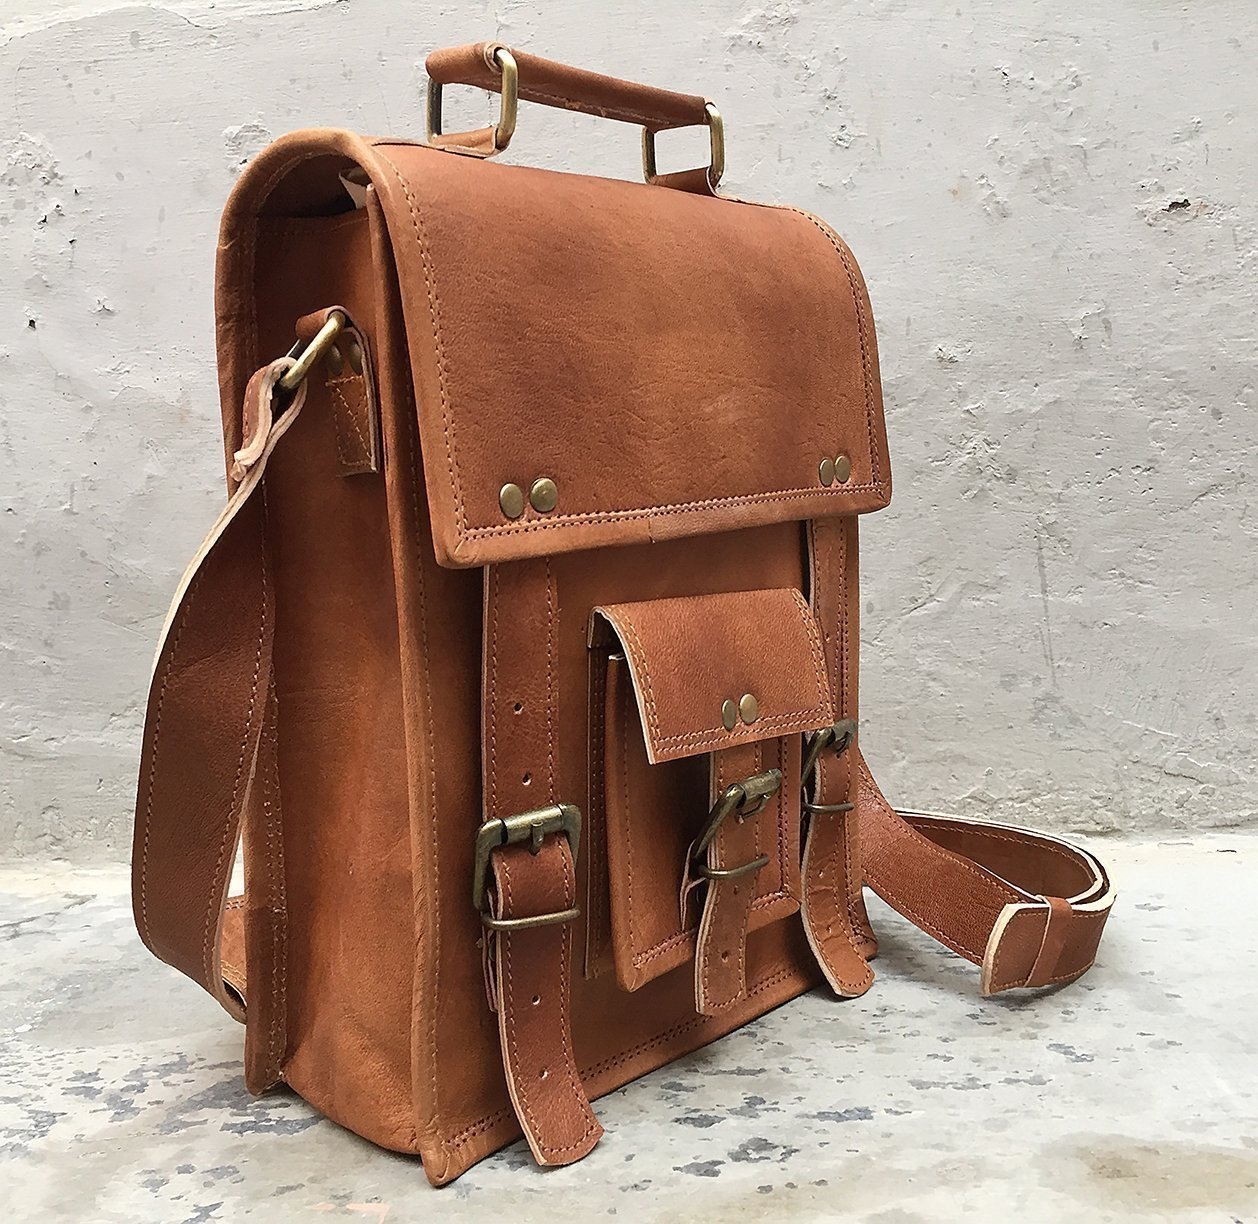 Handmade Brown genuine Leather Crossbody satchel shoulder Messenger briefcase ipad bag 13 inch mens women's